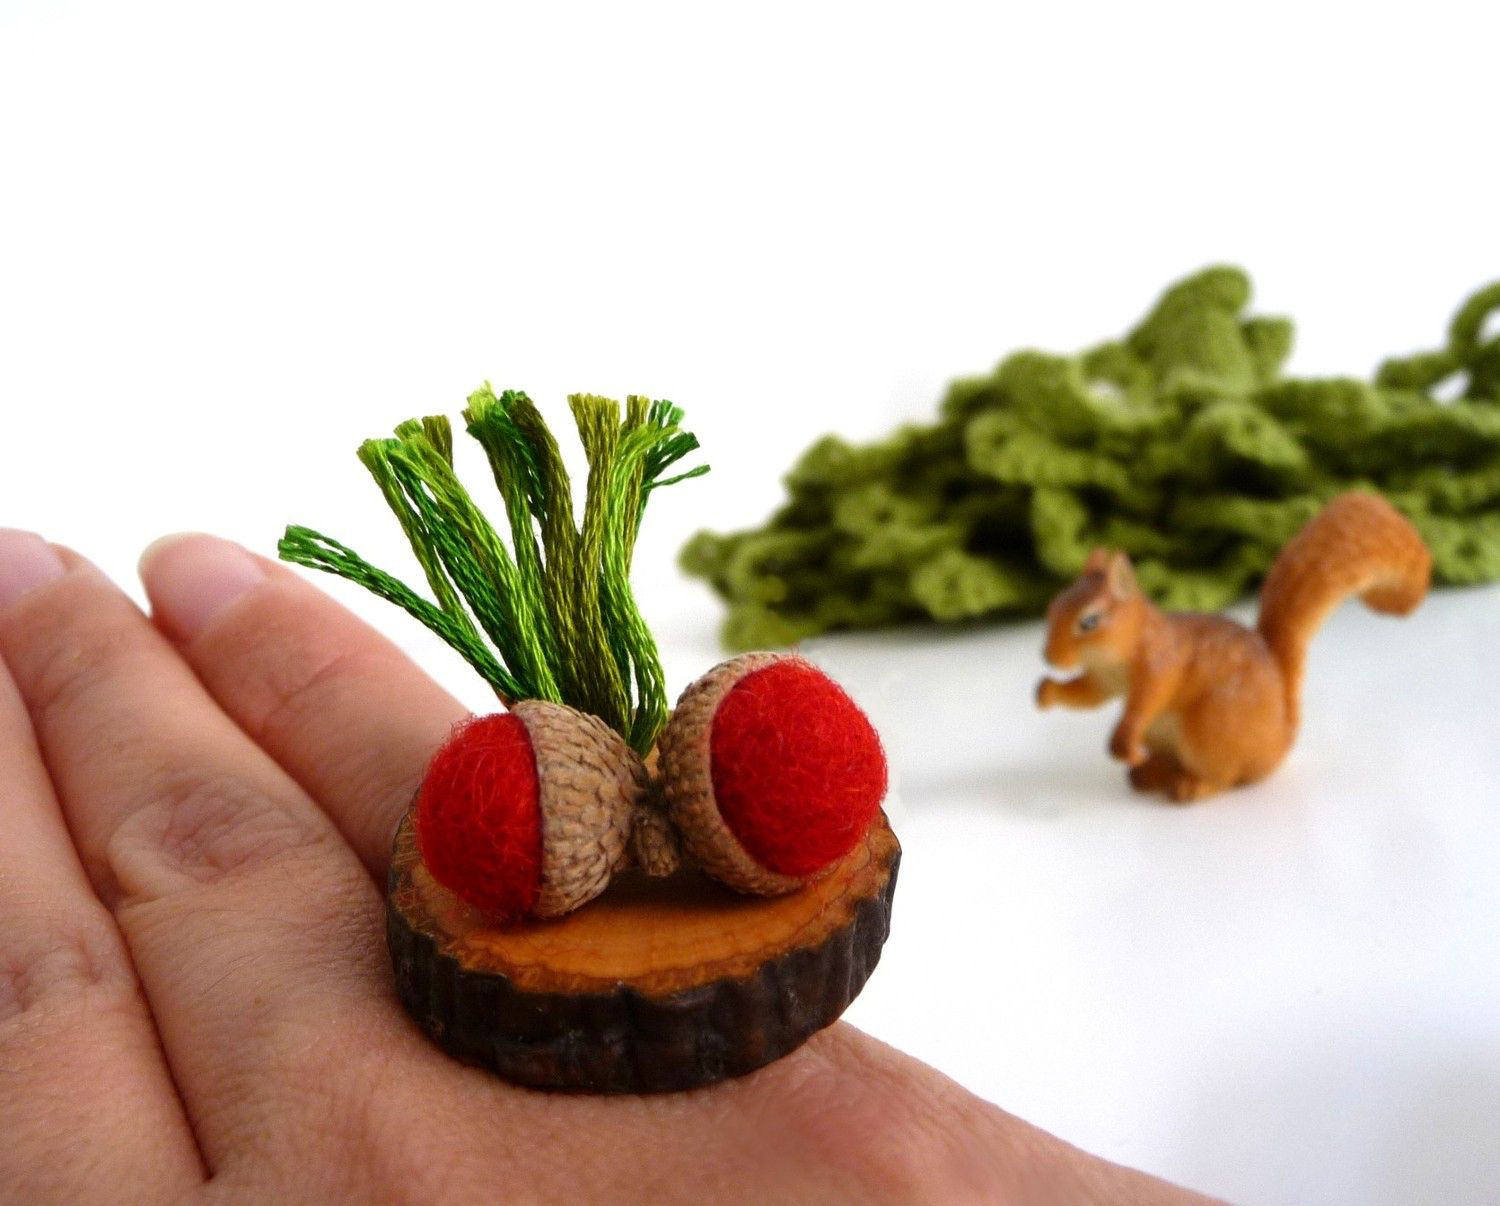 Adjustable Wood Slice Ring with Felt Red Acorns - ACORN WOODLAND by ixela on Etsy https://www.etsy.com/listing/67059067/adjustable-wood-slice-ring-with-felt-red